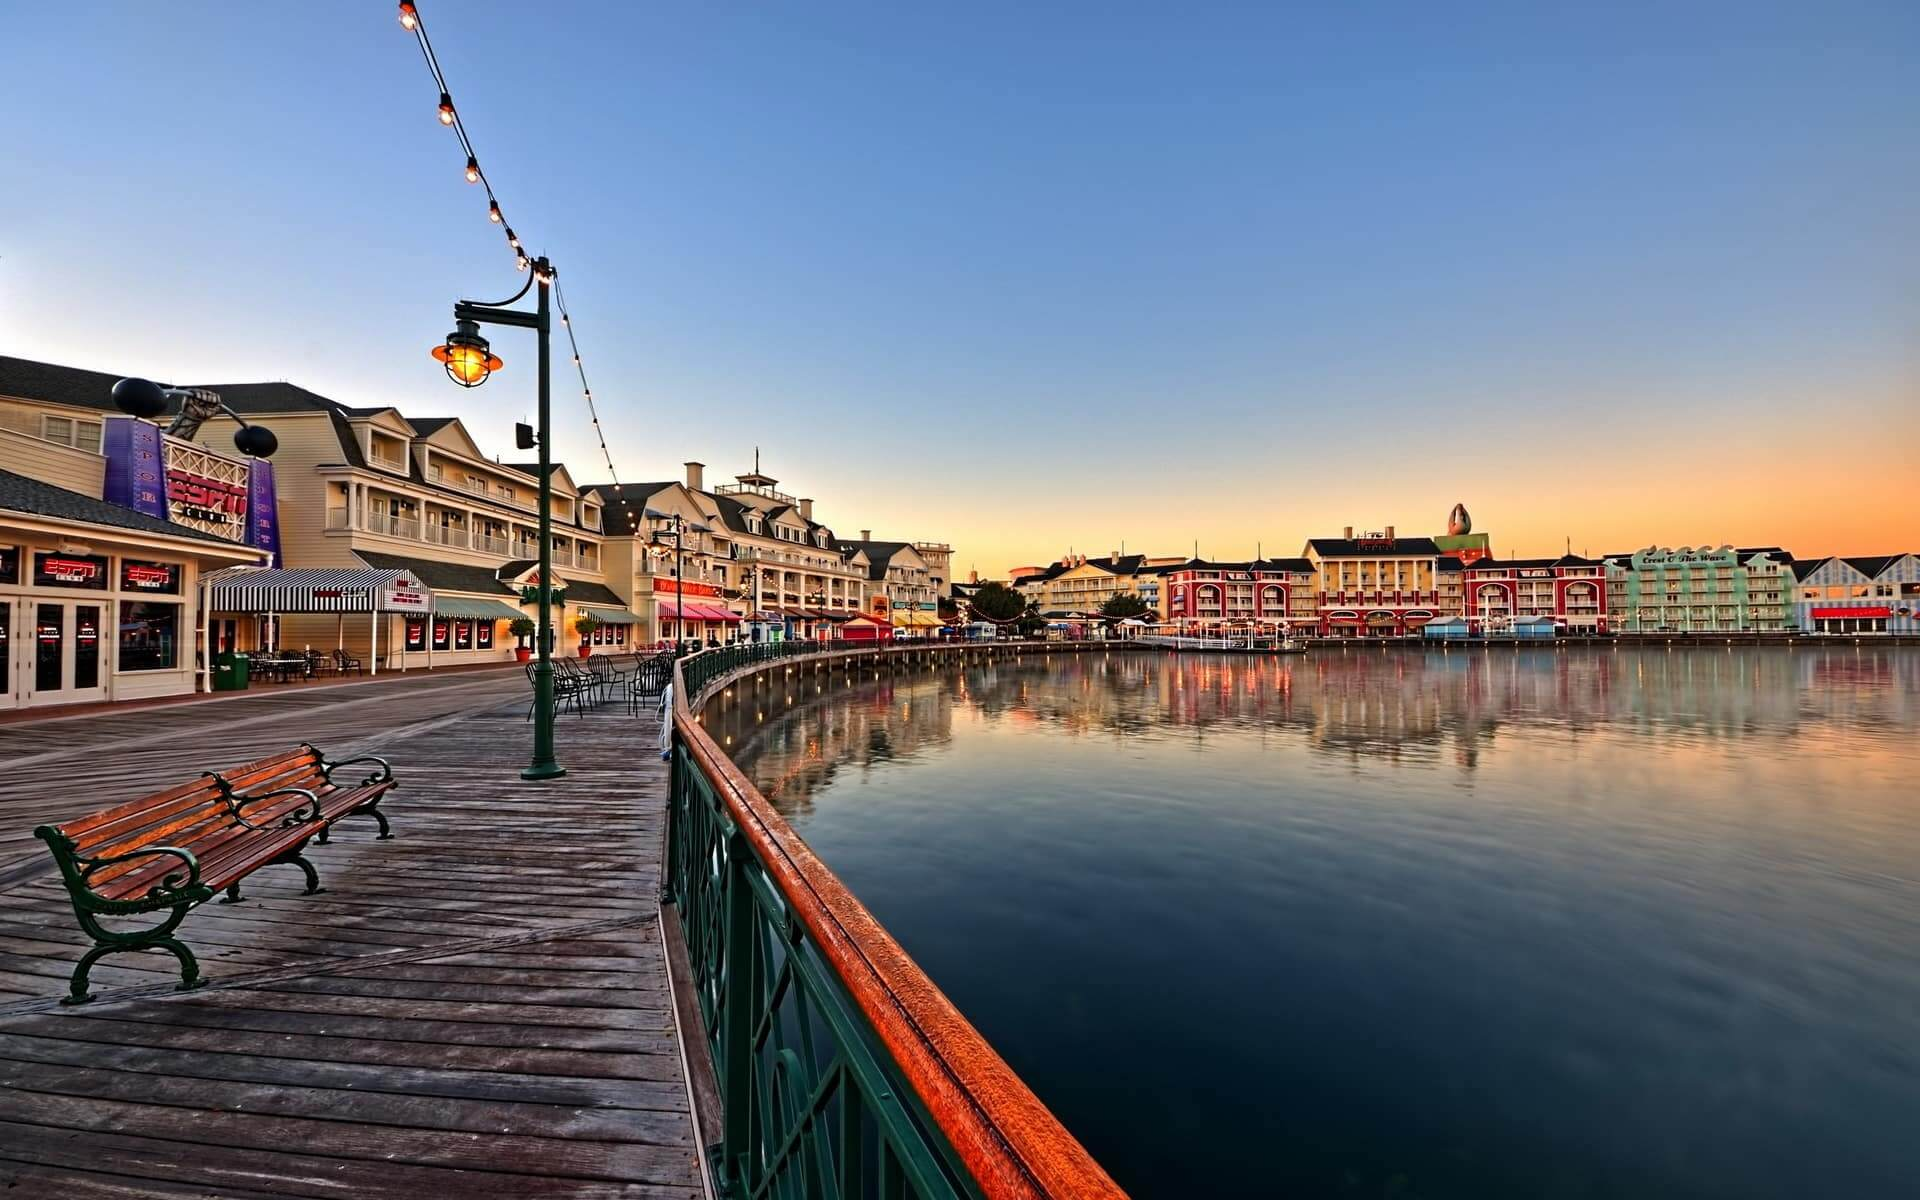 Disney's Boardwalk em Orlando 3